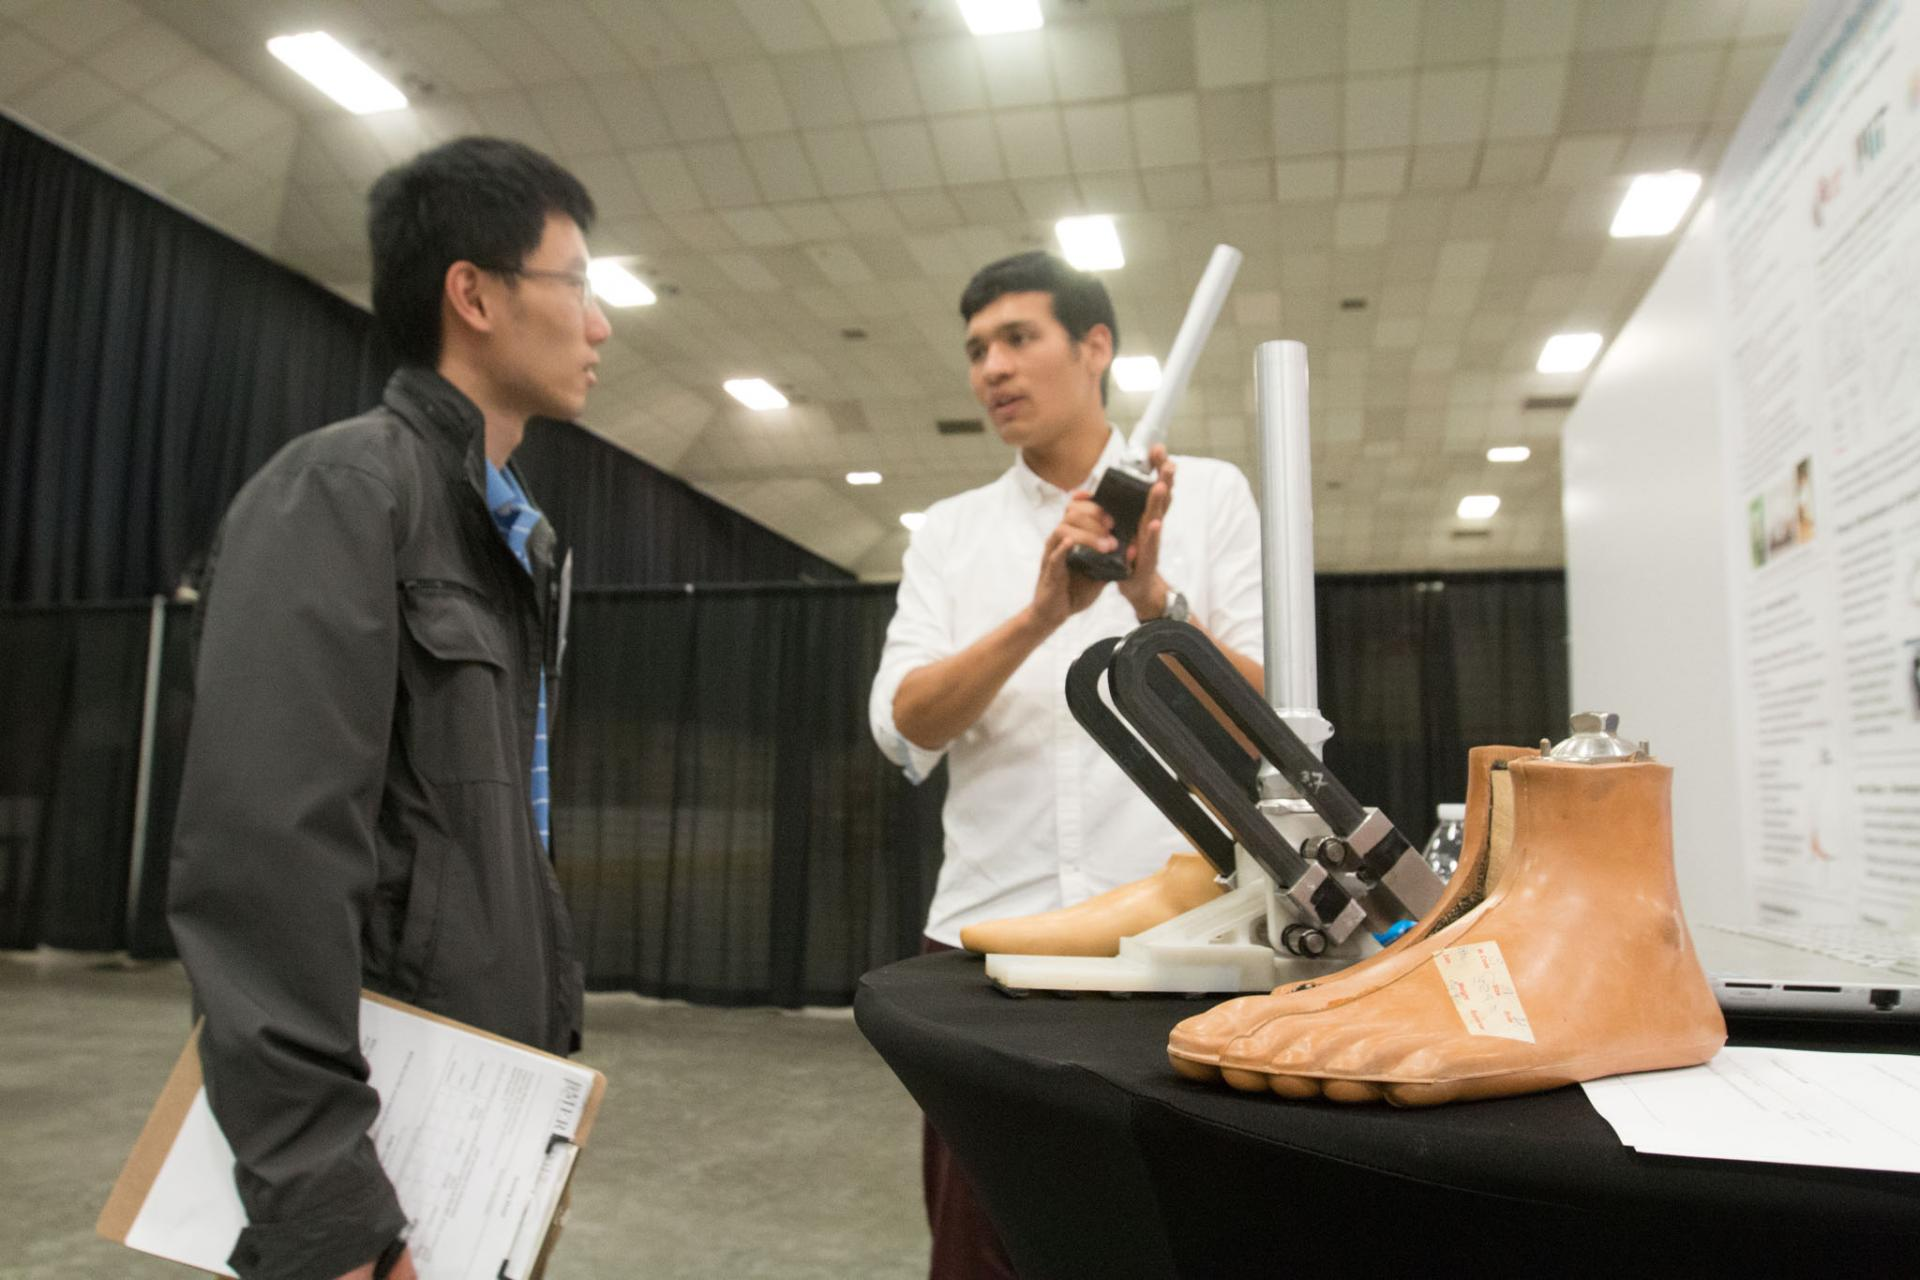 The 4rd annual  Mechanical Engineering Research Exhibition, hosted by the Graduate Association of Mechanical Engineers (GAME), showcases and celebrates the research within MechE.